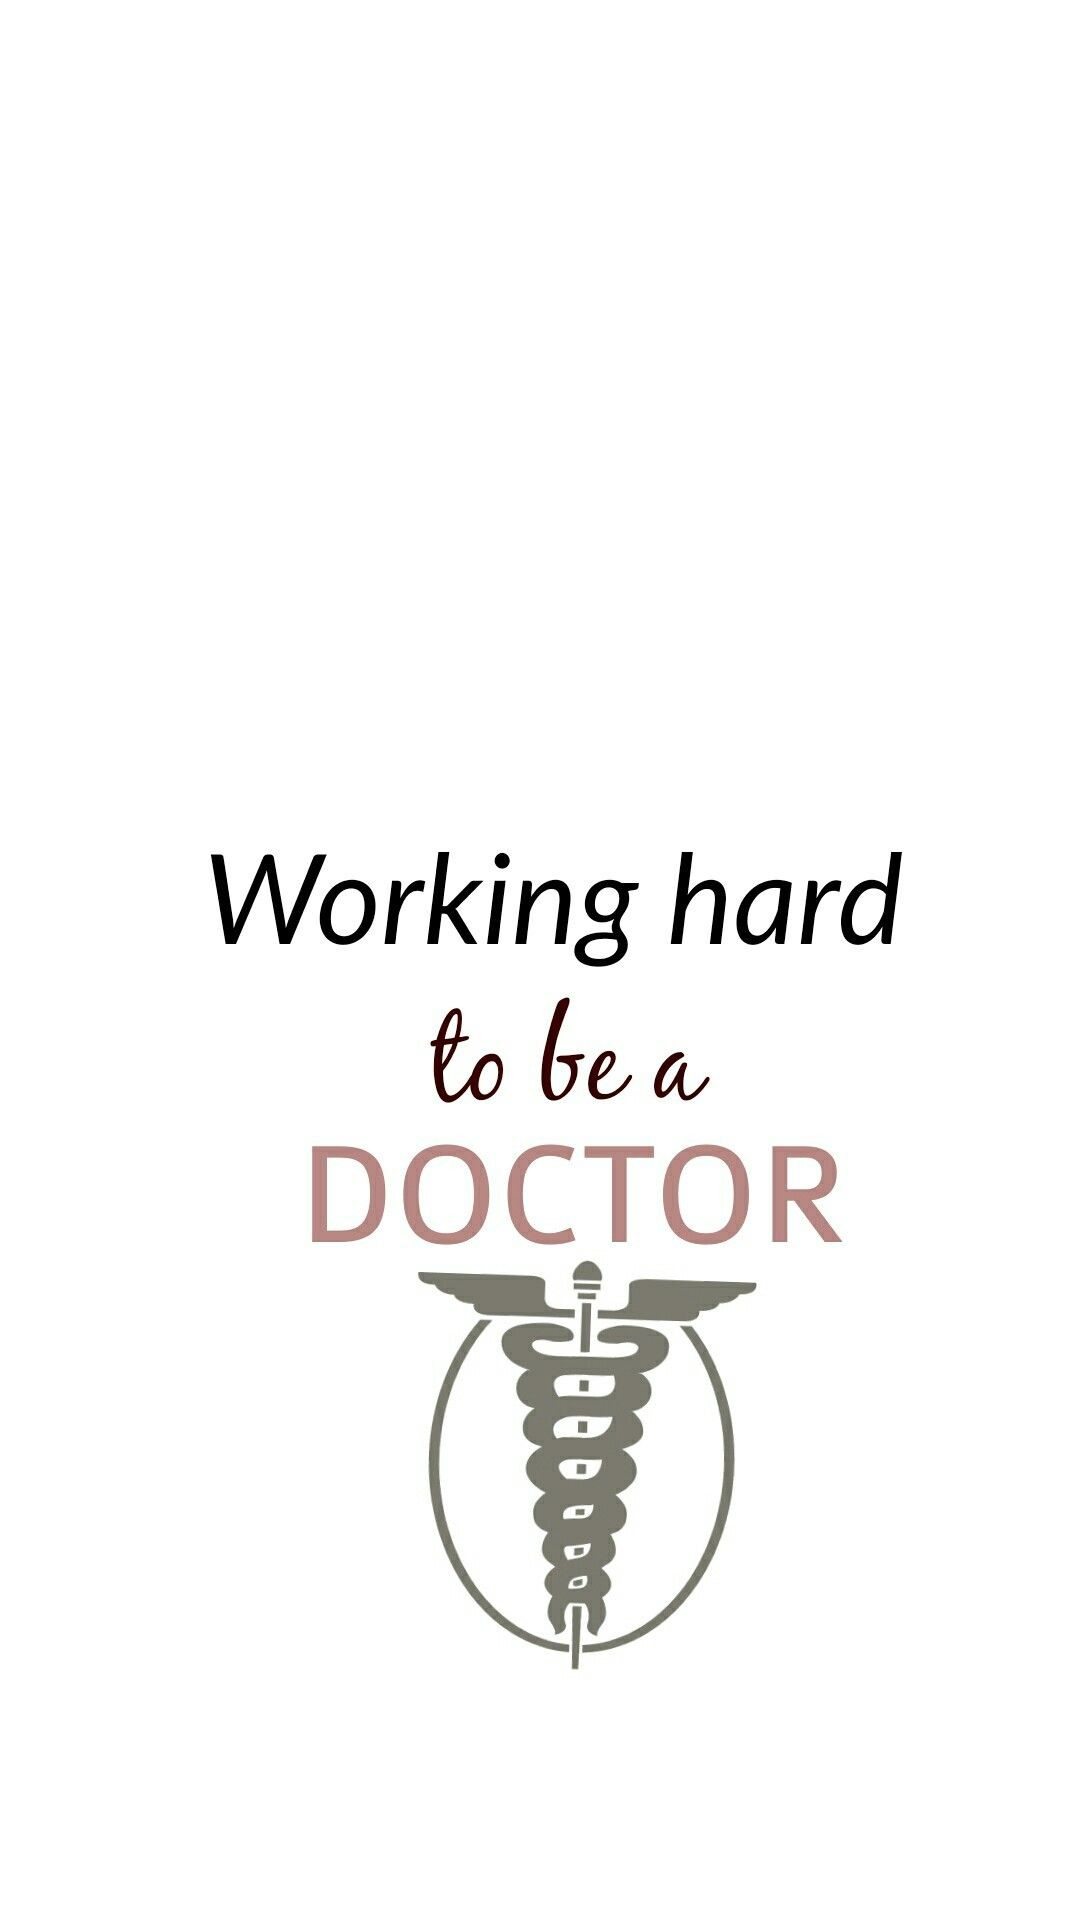 1080x1920 Medicina Wallpaper Working Hard to be a Doctor